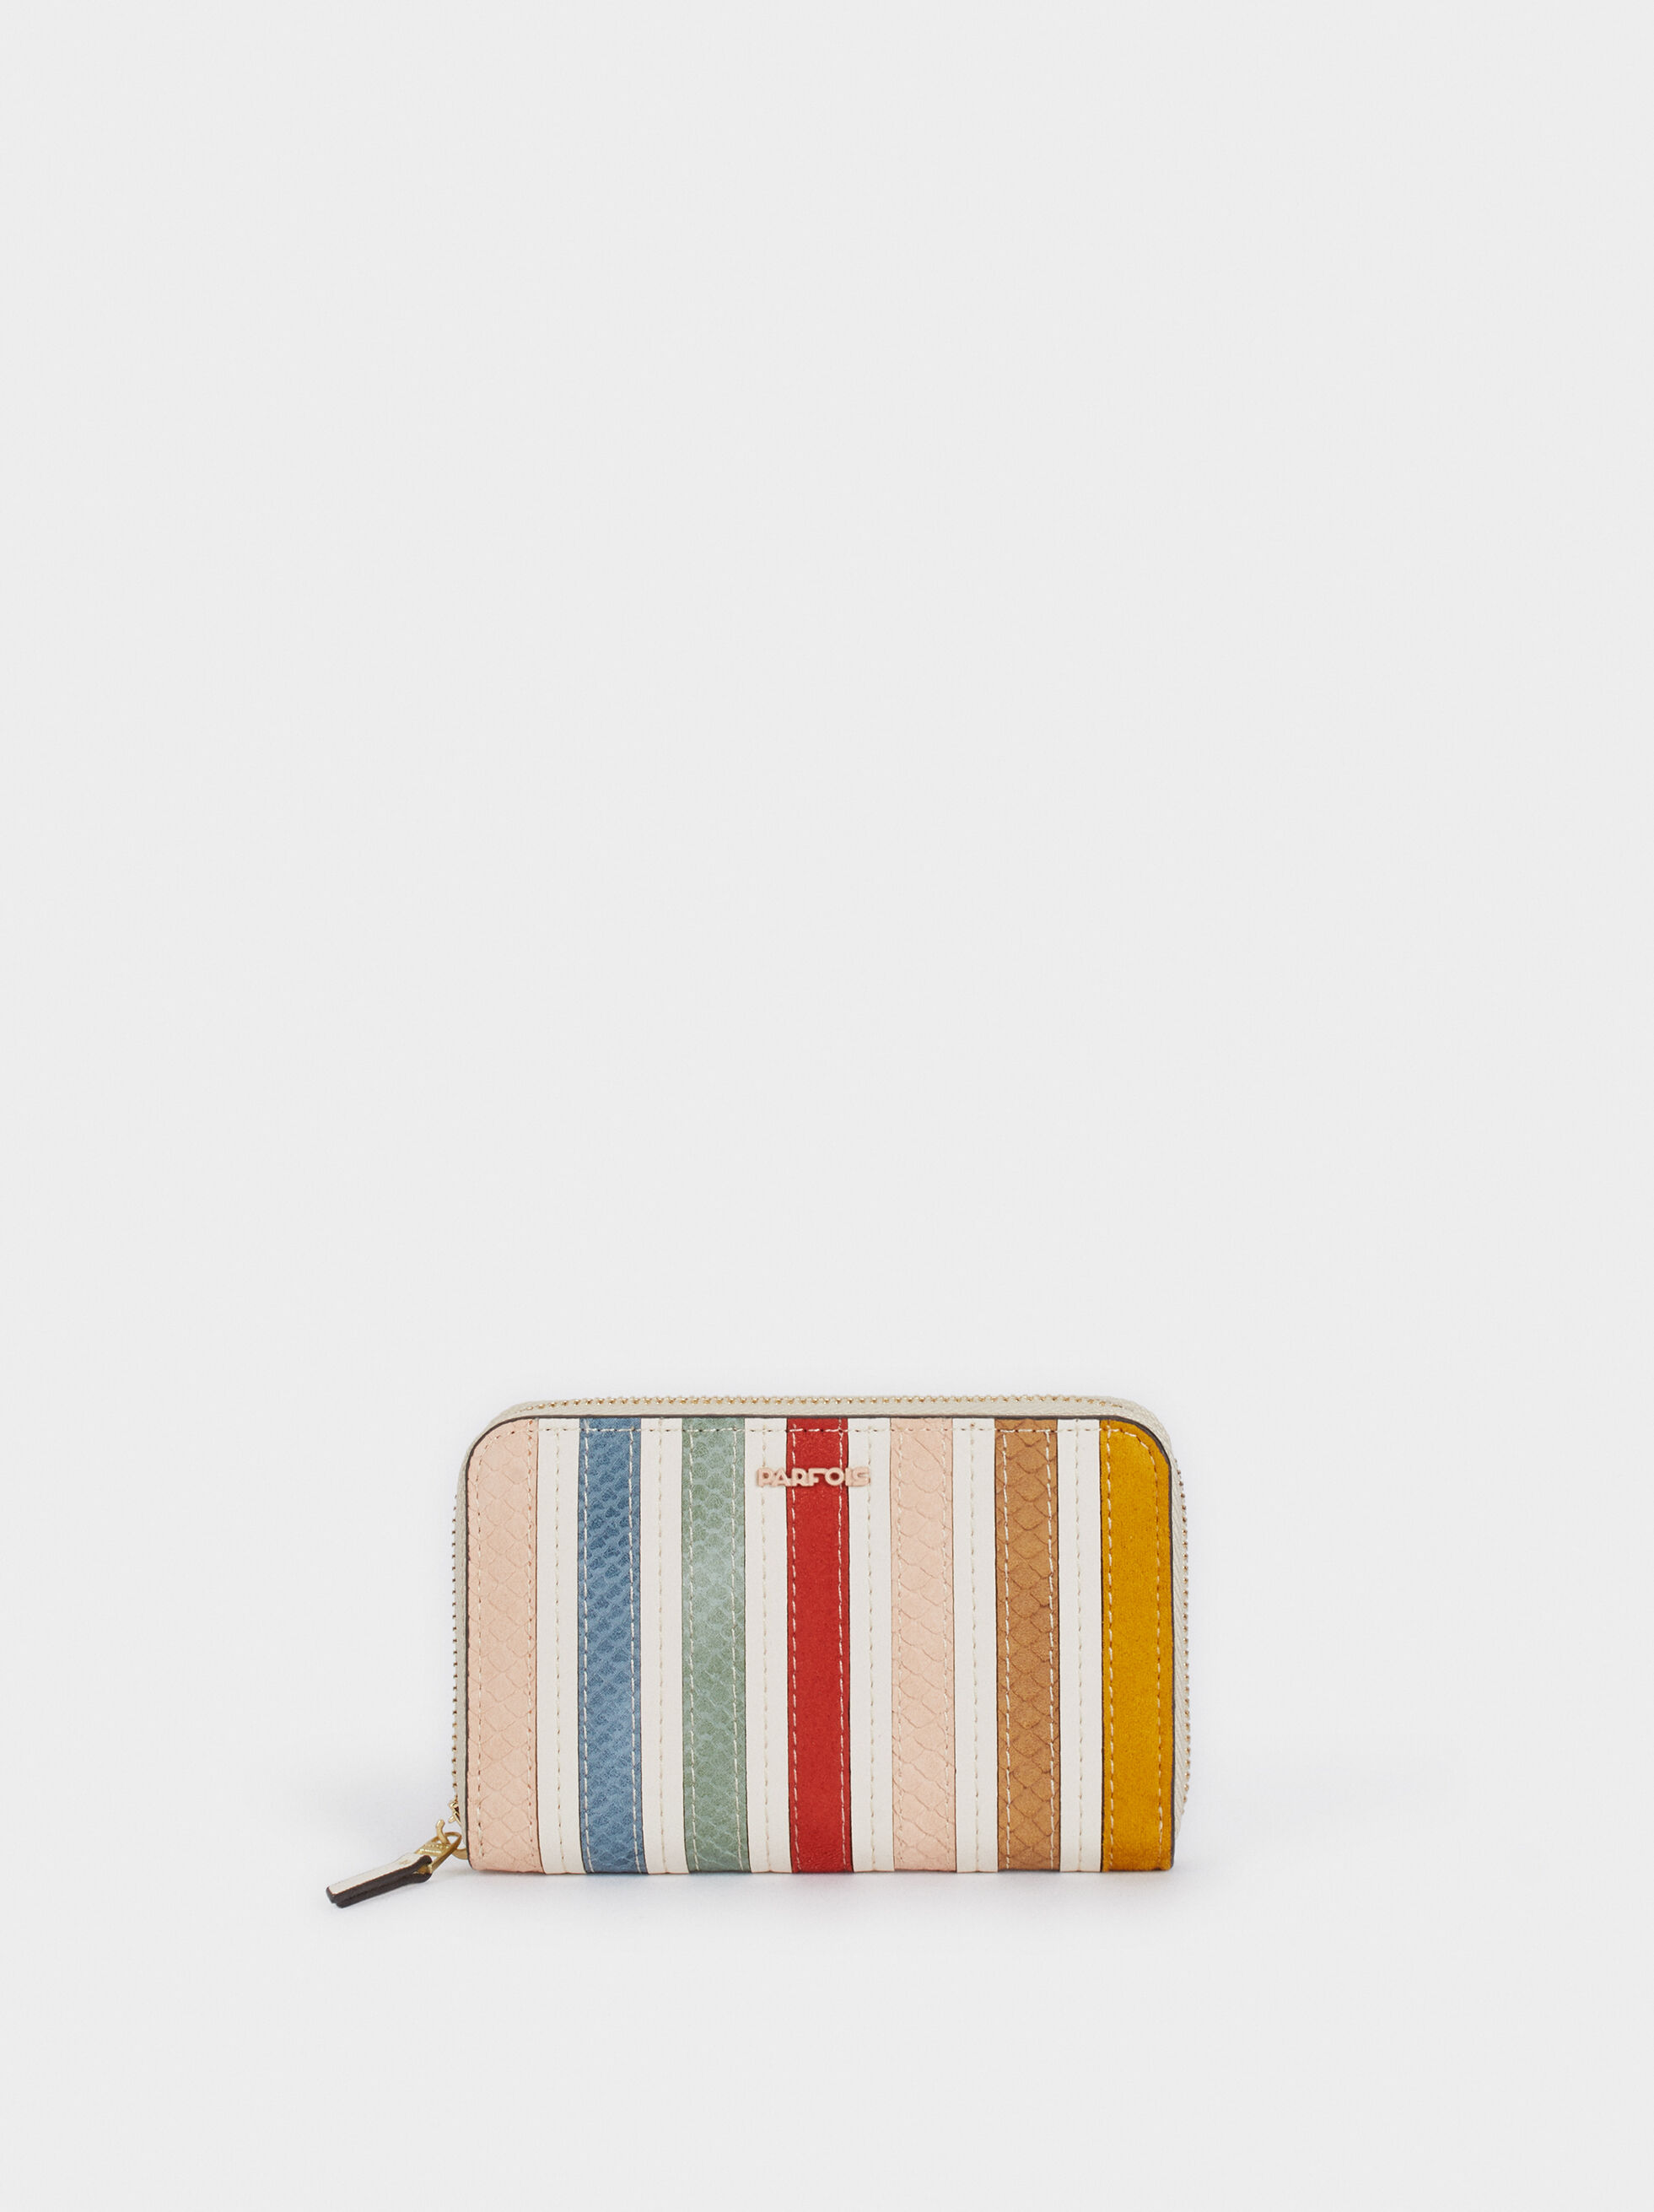 Zipped Purse, Ecru, hi-res